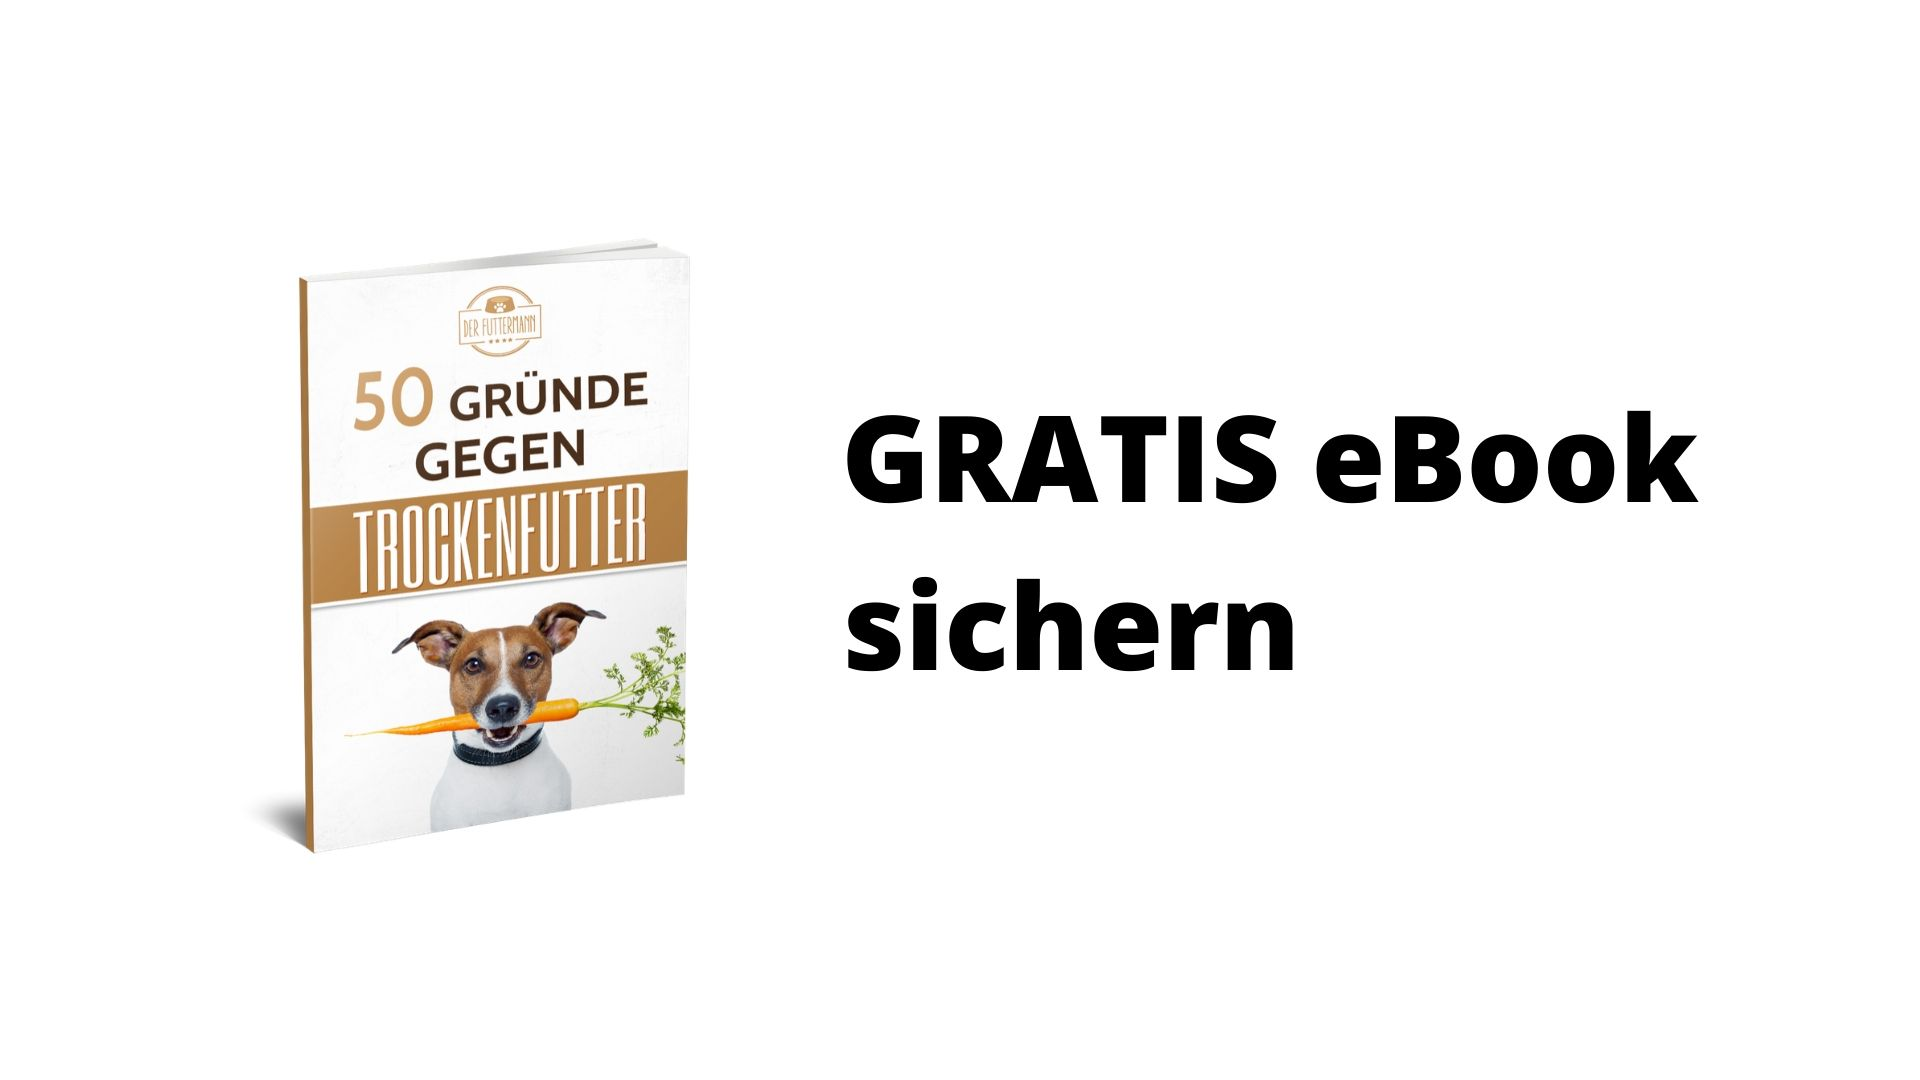 GRATIS eBook sichern